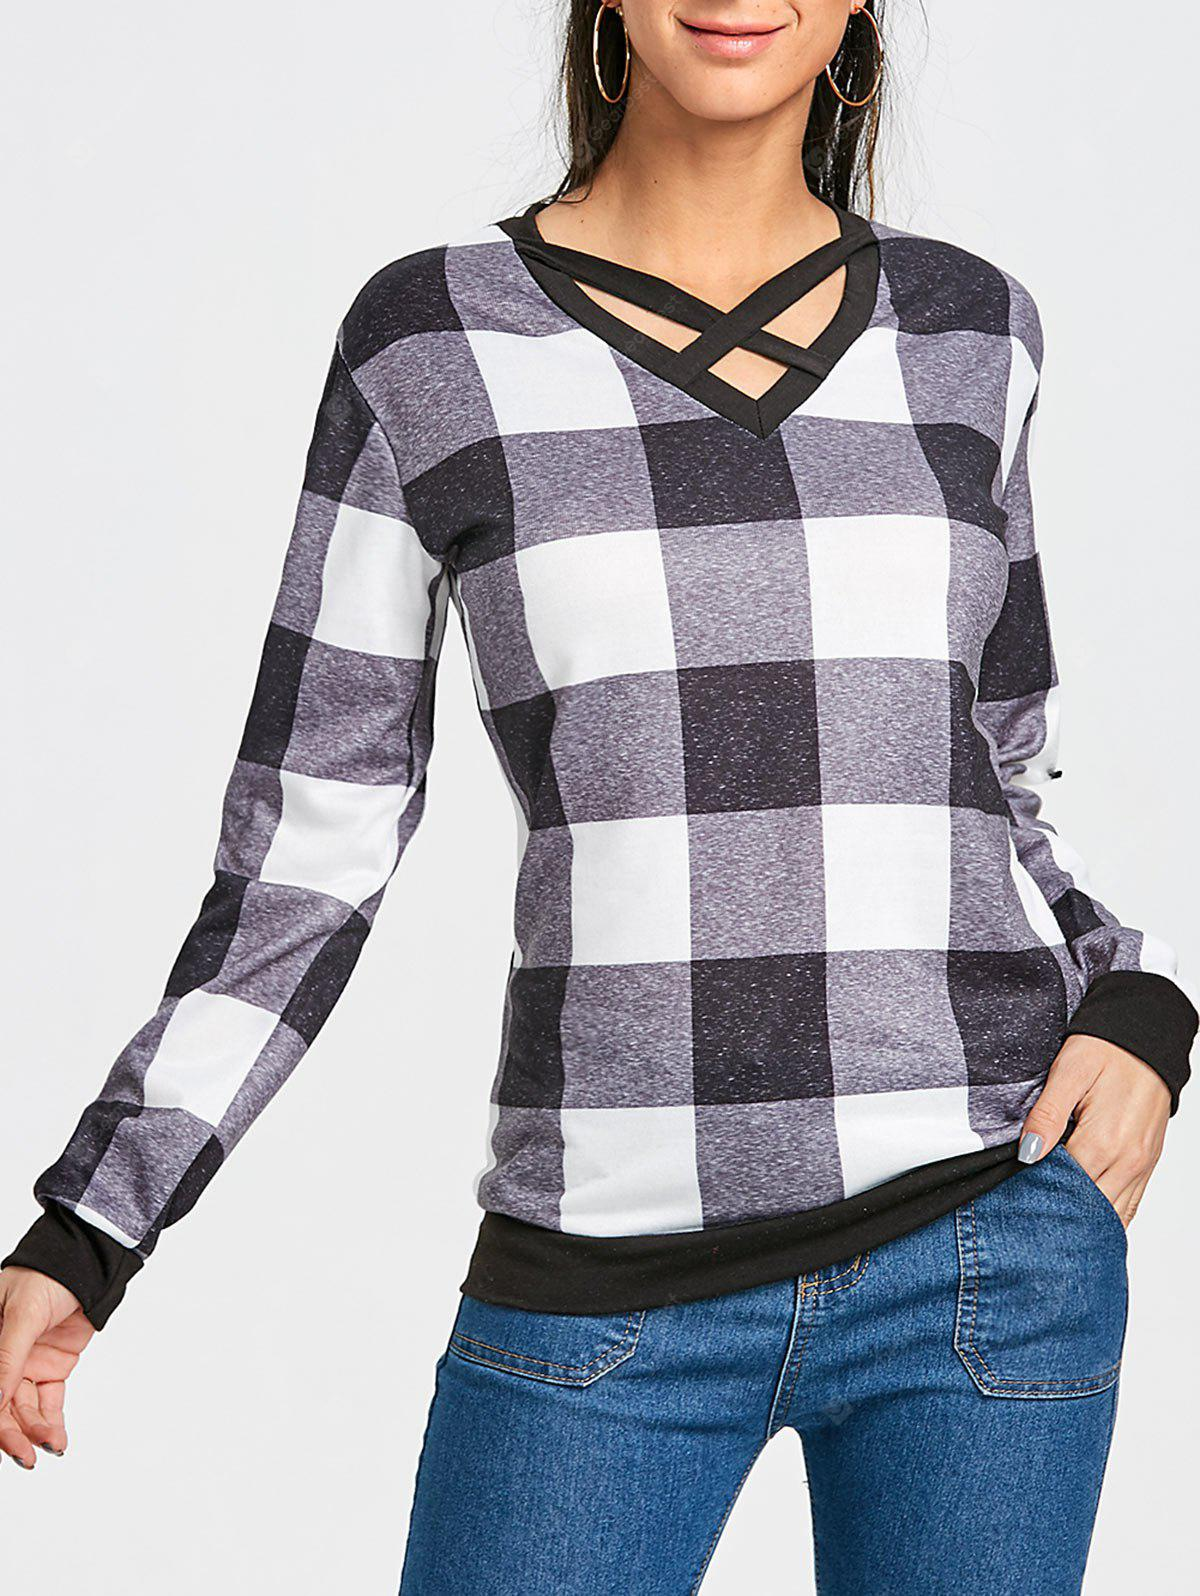 GRAY, Apparel, Women's Clothing, Blouses